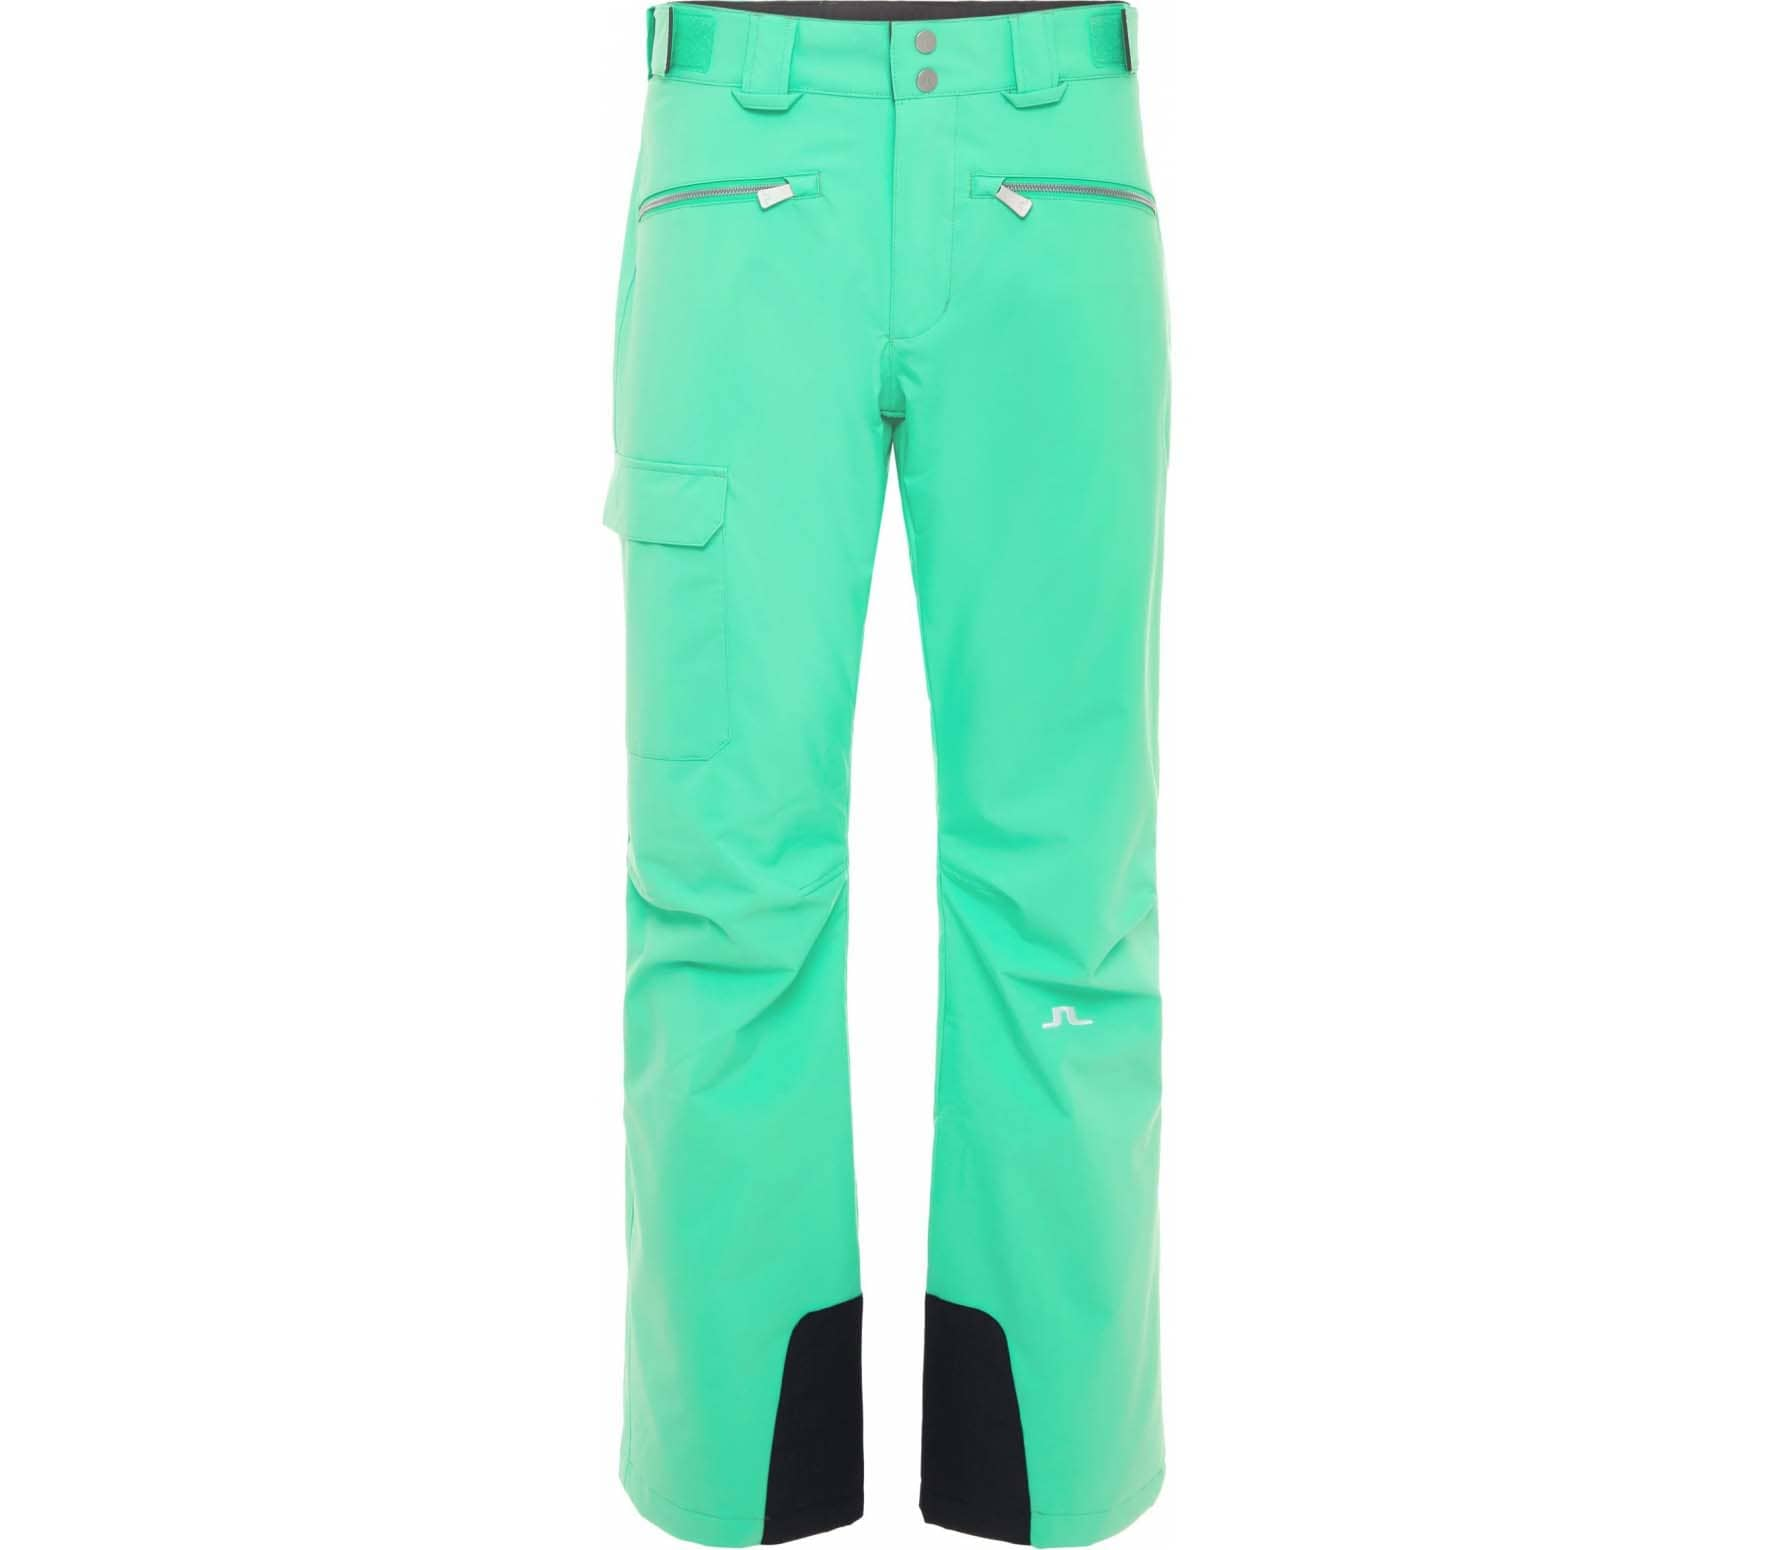 J.Lindeberg - Truuli JL 2L men's skis pants (green)